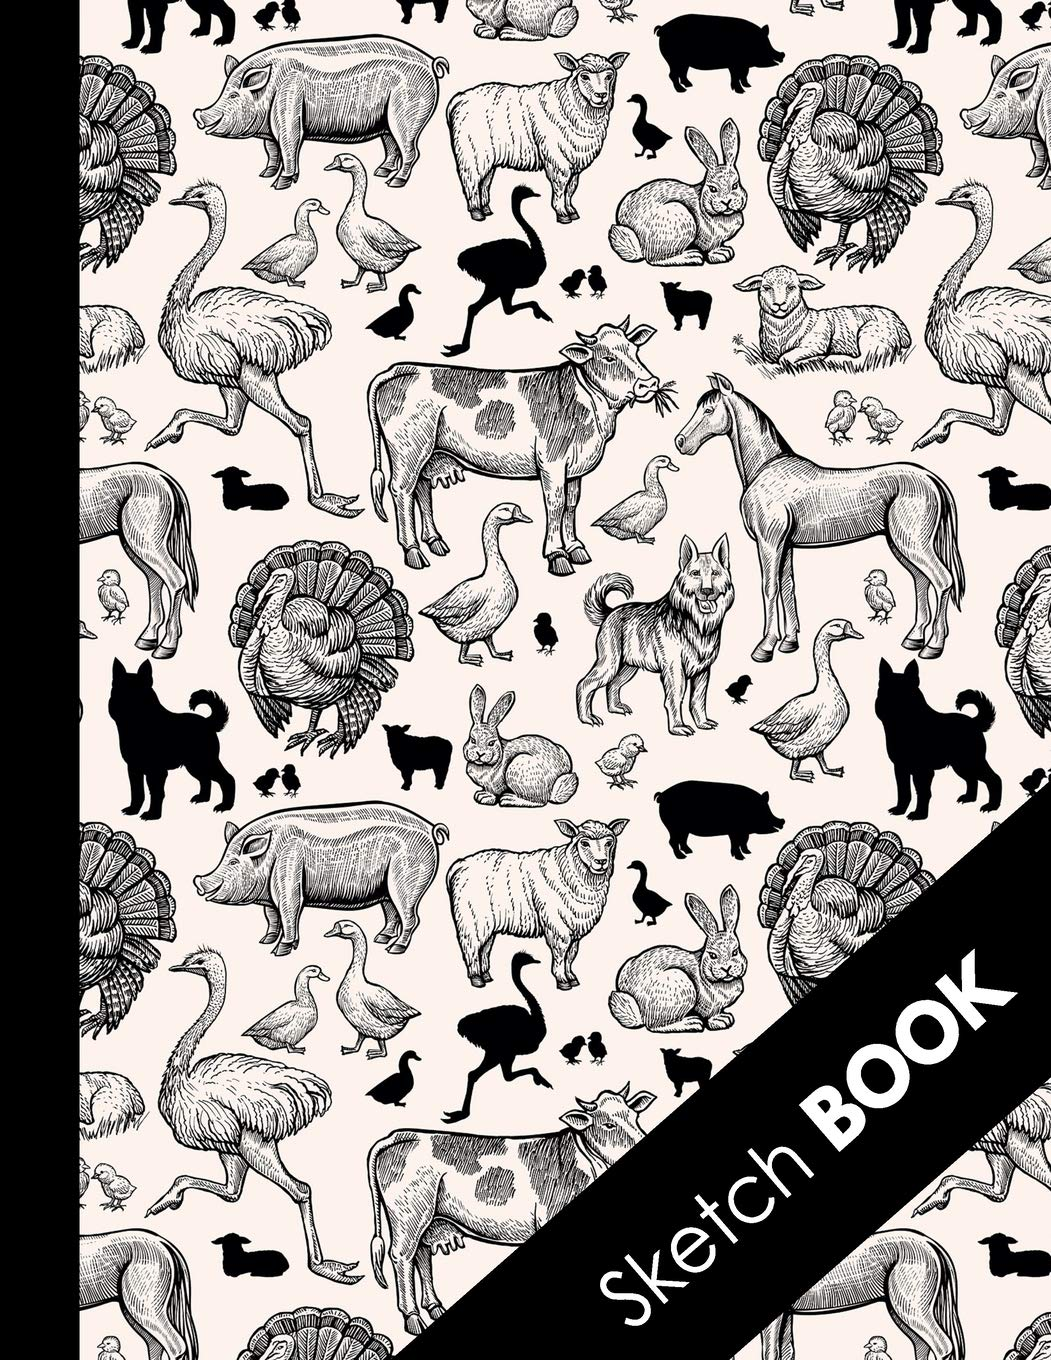 Amazon Com Sketch Book Practice Drawing Doodle Paint Write Large Sketchbook And Creative Journal Funny Farm Animals Pattern 9781686378164 Pencils Kelly Books